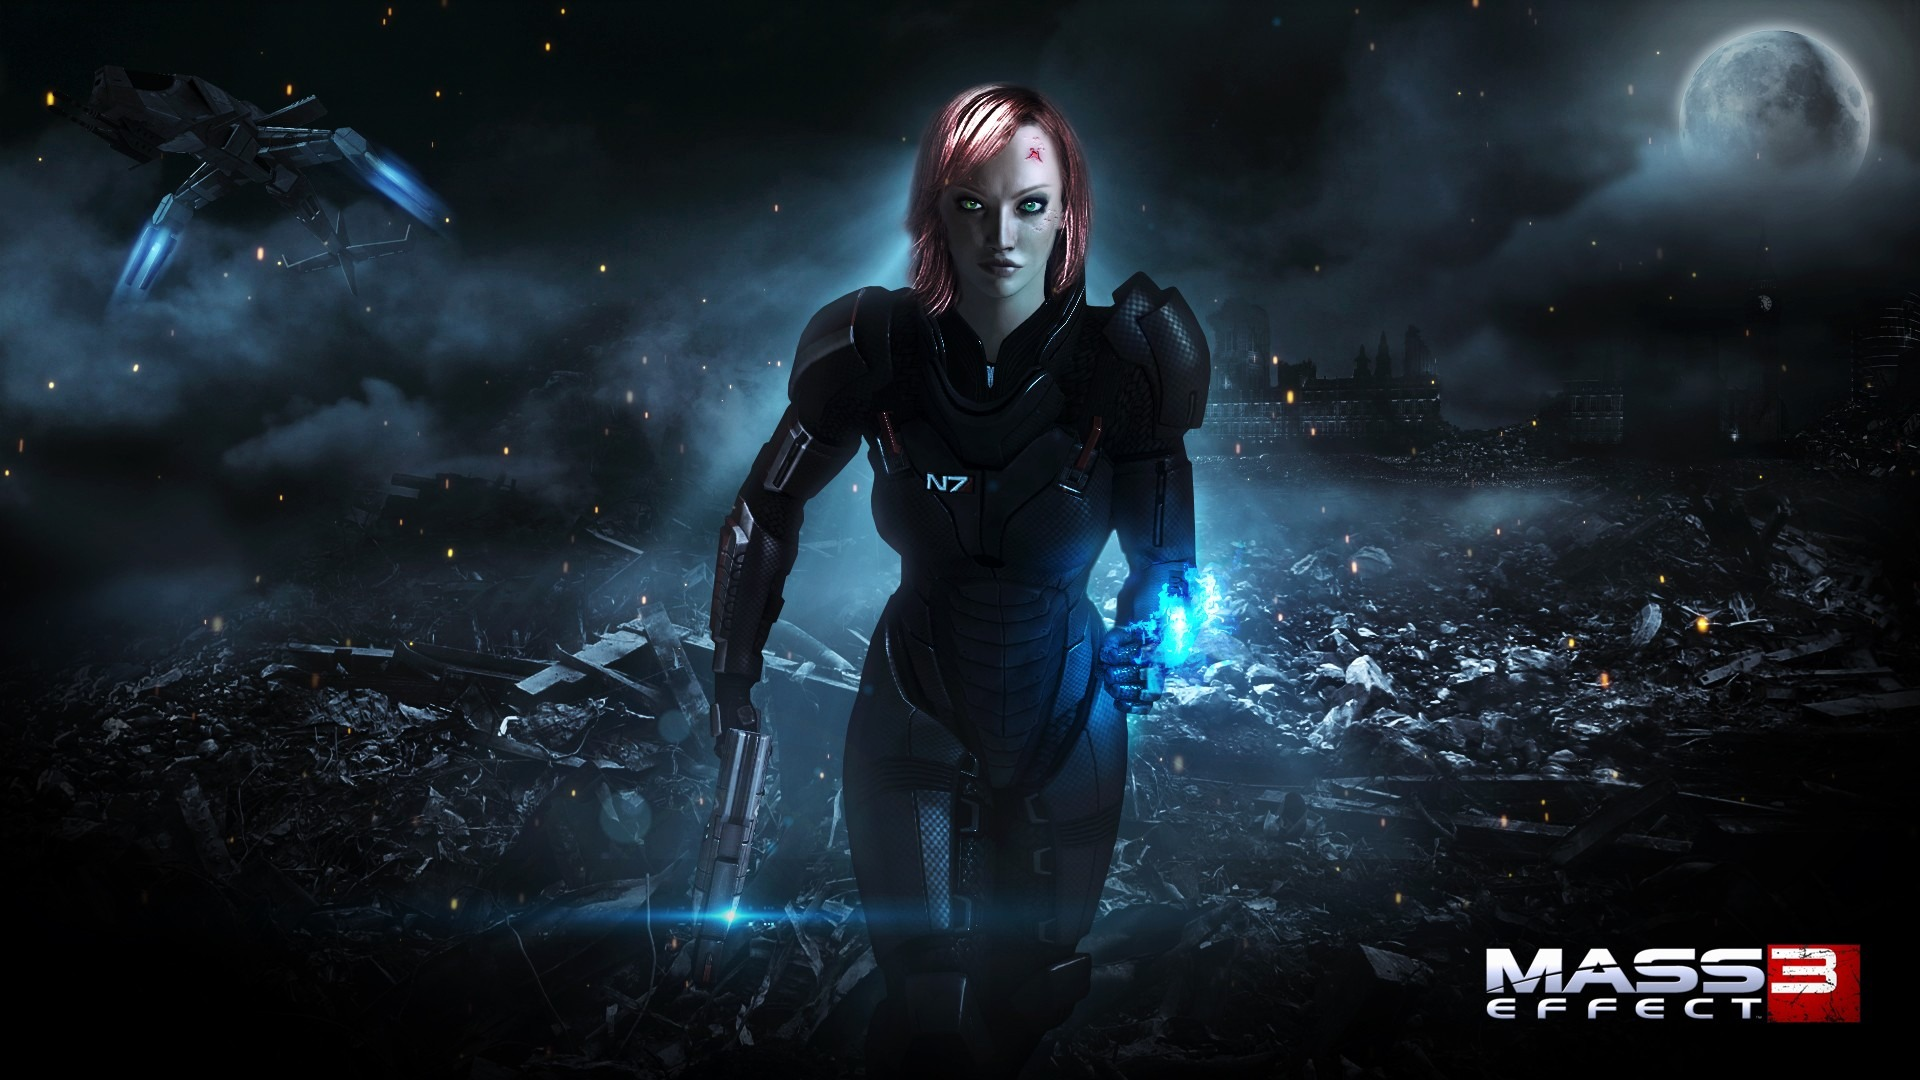 Free Download Mass Effect 3 Hd Wallpapers 18 1920x1080